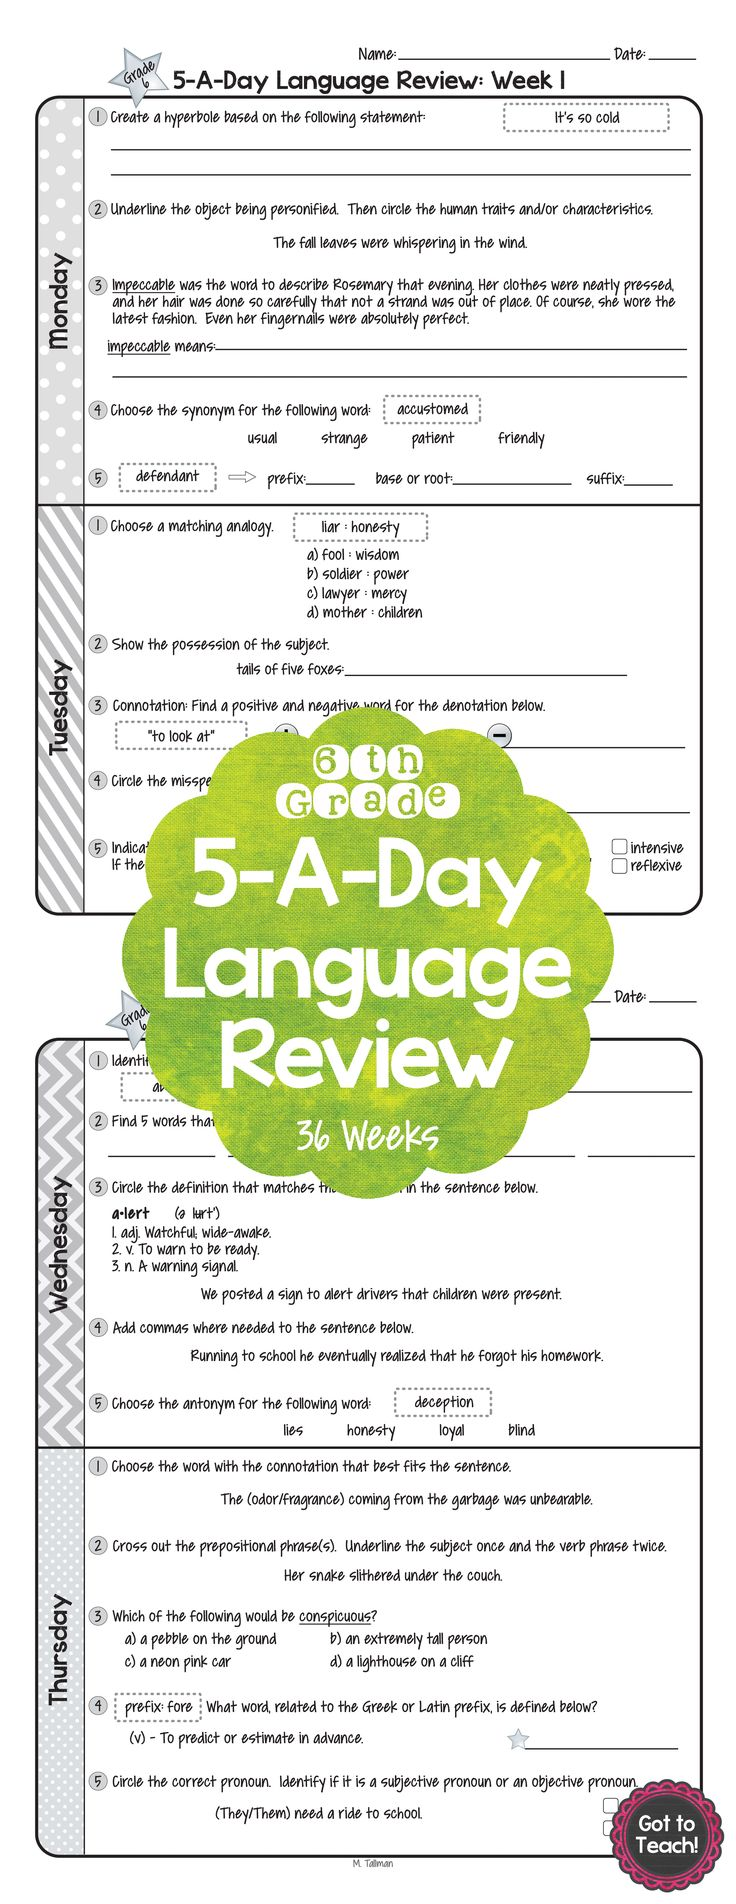 week 5 psy304document 1 Homework academic writing service mqtermpaperltmbshvkxirus spanish essay proofreader hoop dreams essays opening the door to new life essay case study o fold.